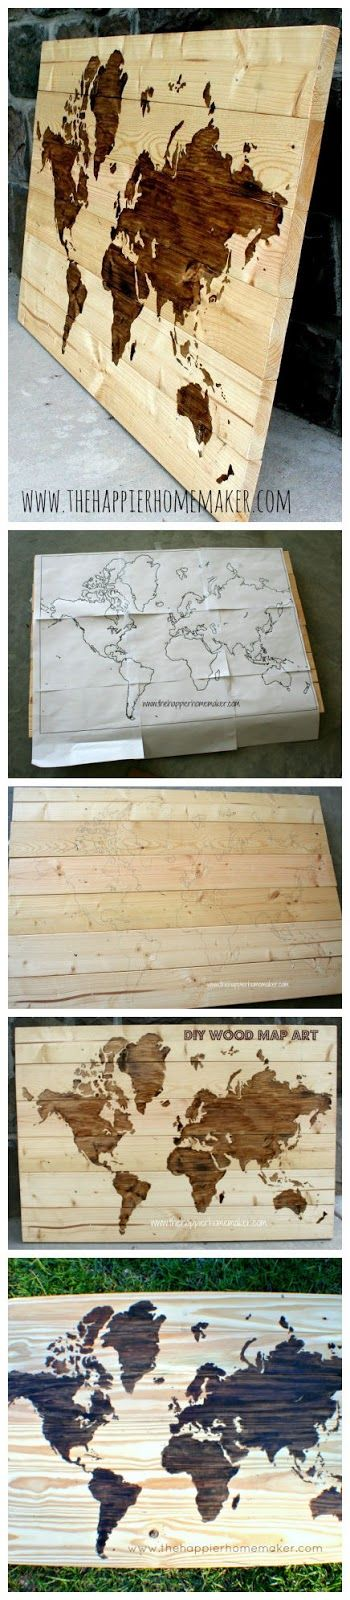 DIY Wooden World Map Art - hang on wall, then stick straight pins in where you've been